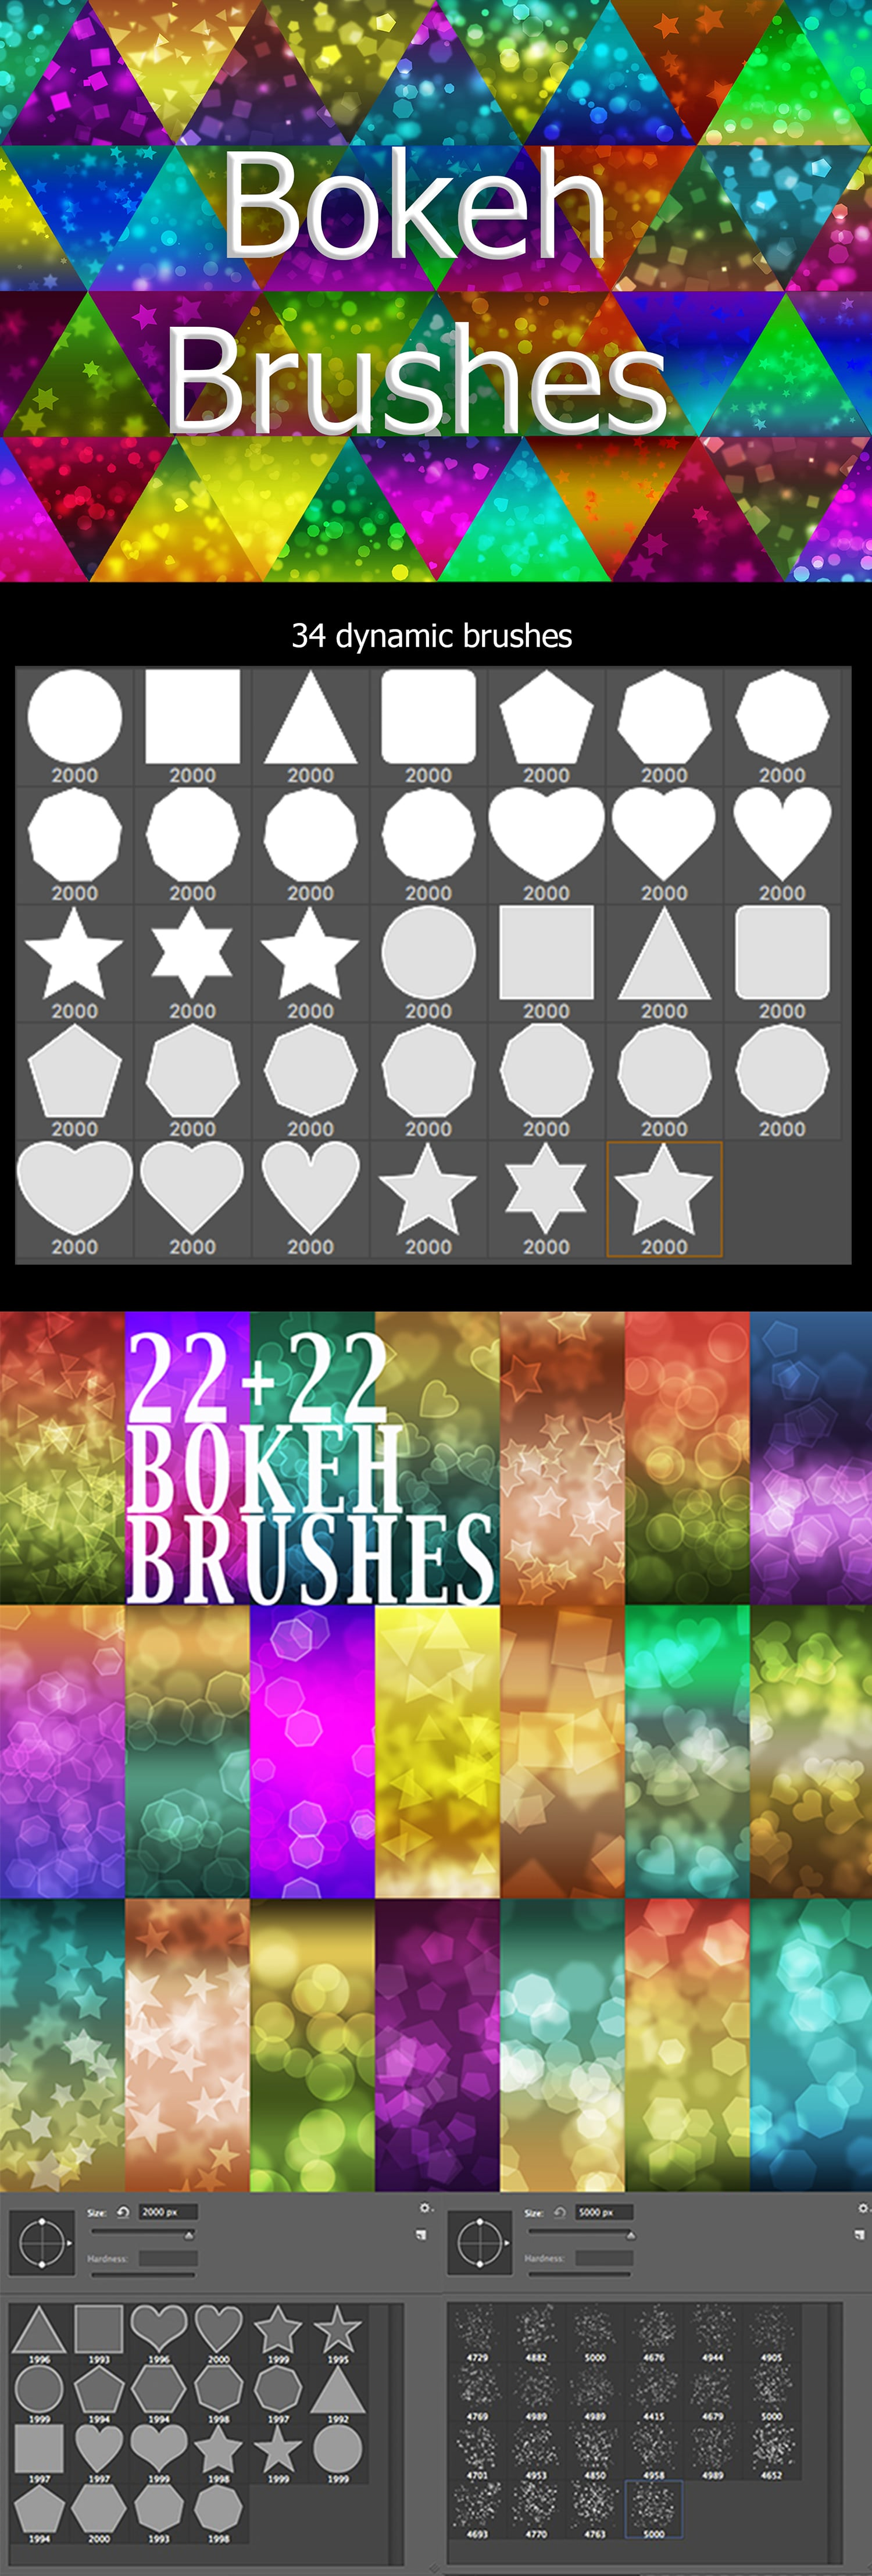 2500+ Artistic Brushes + Extra Assets - 11 Bokeh